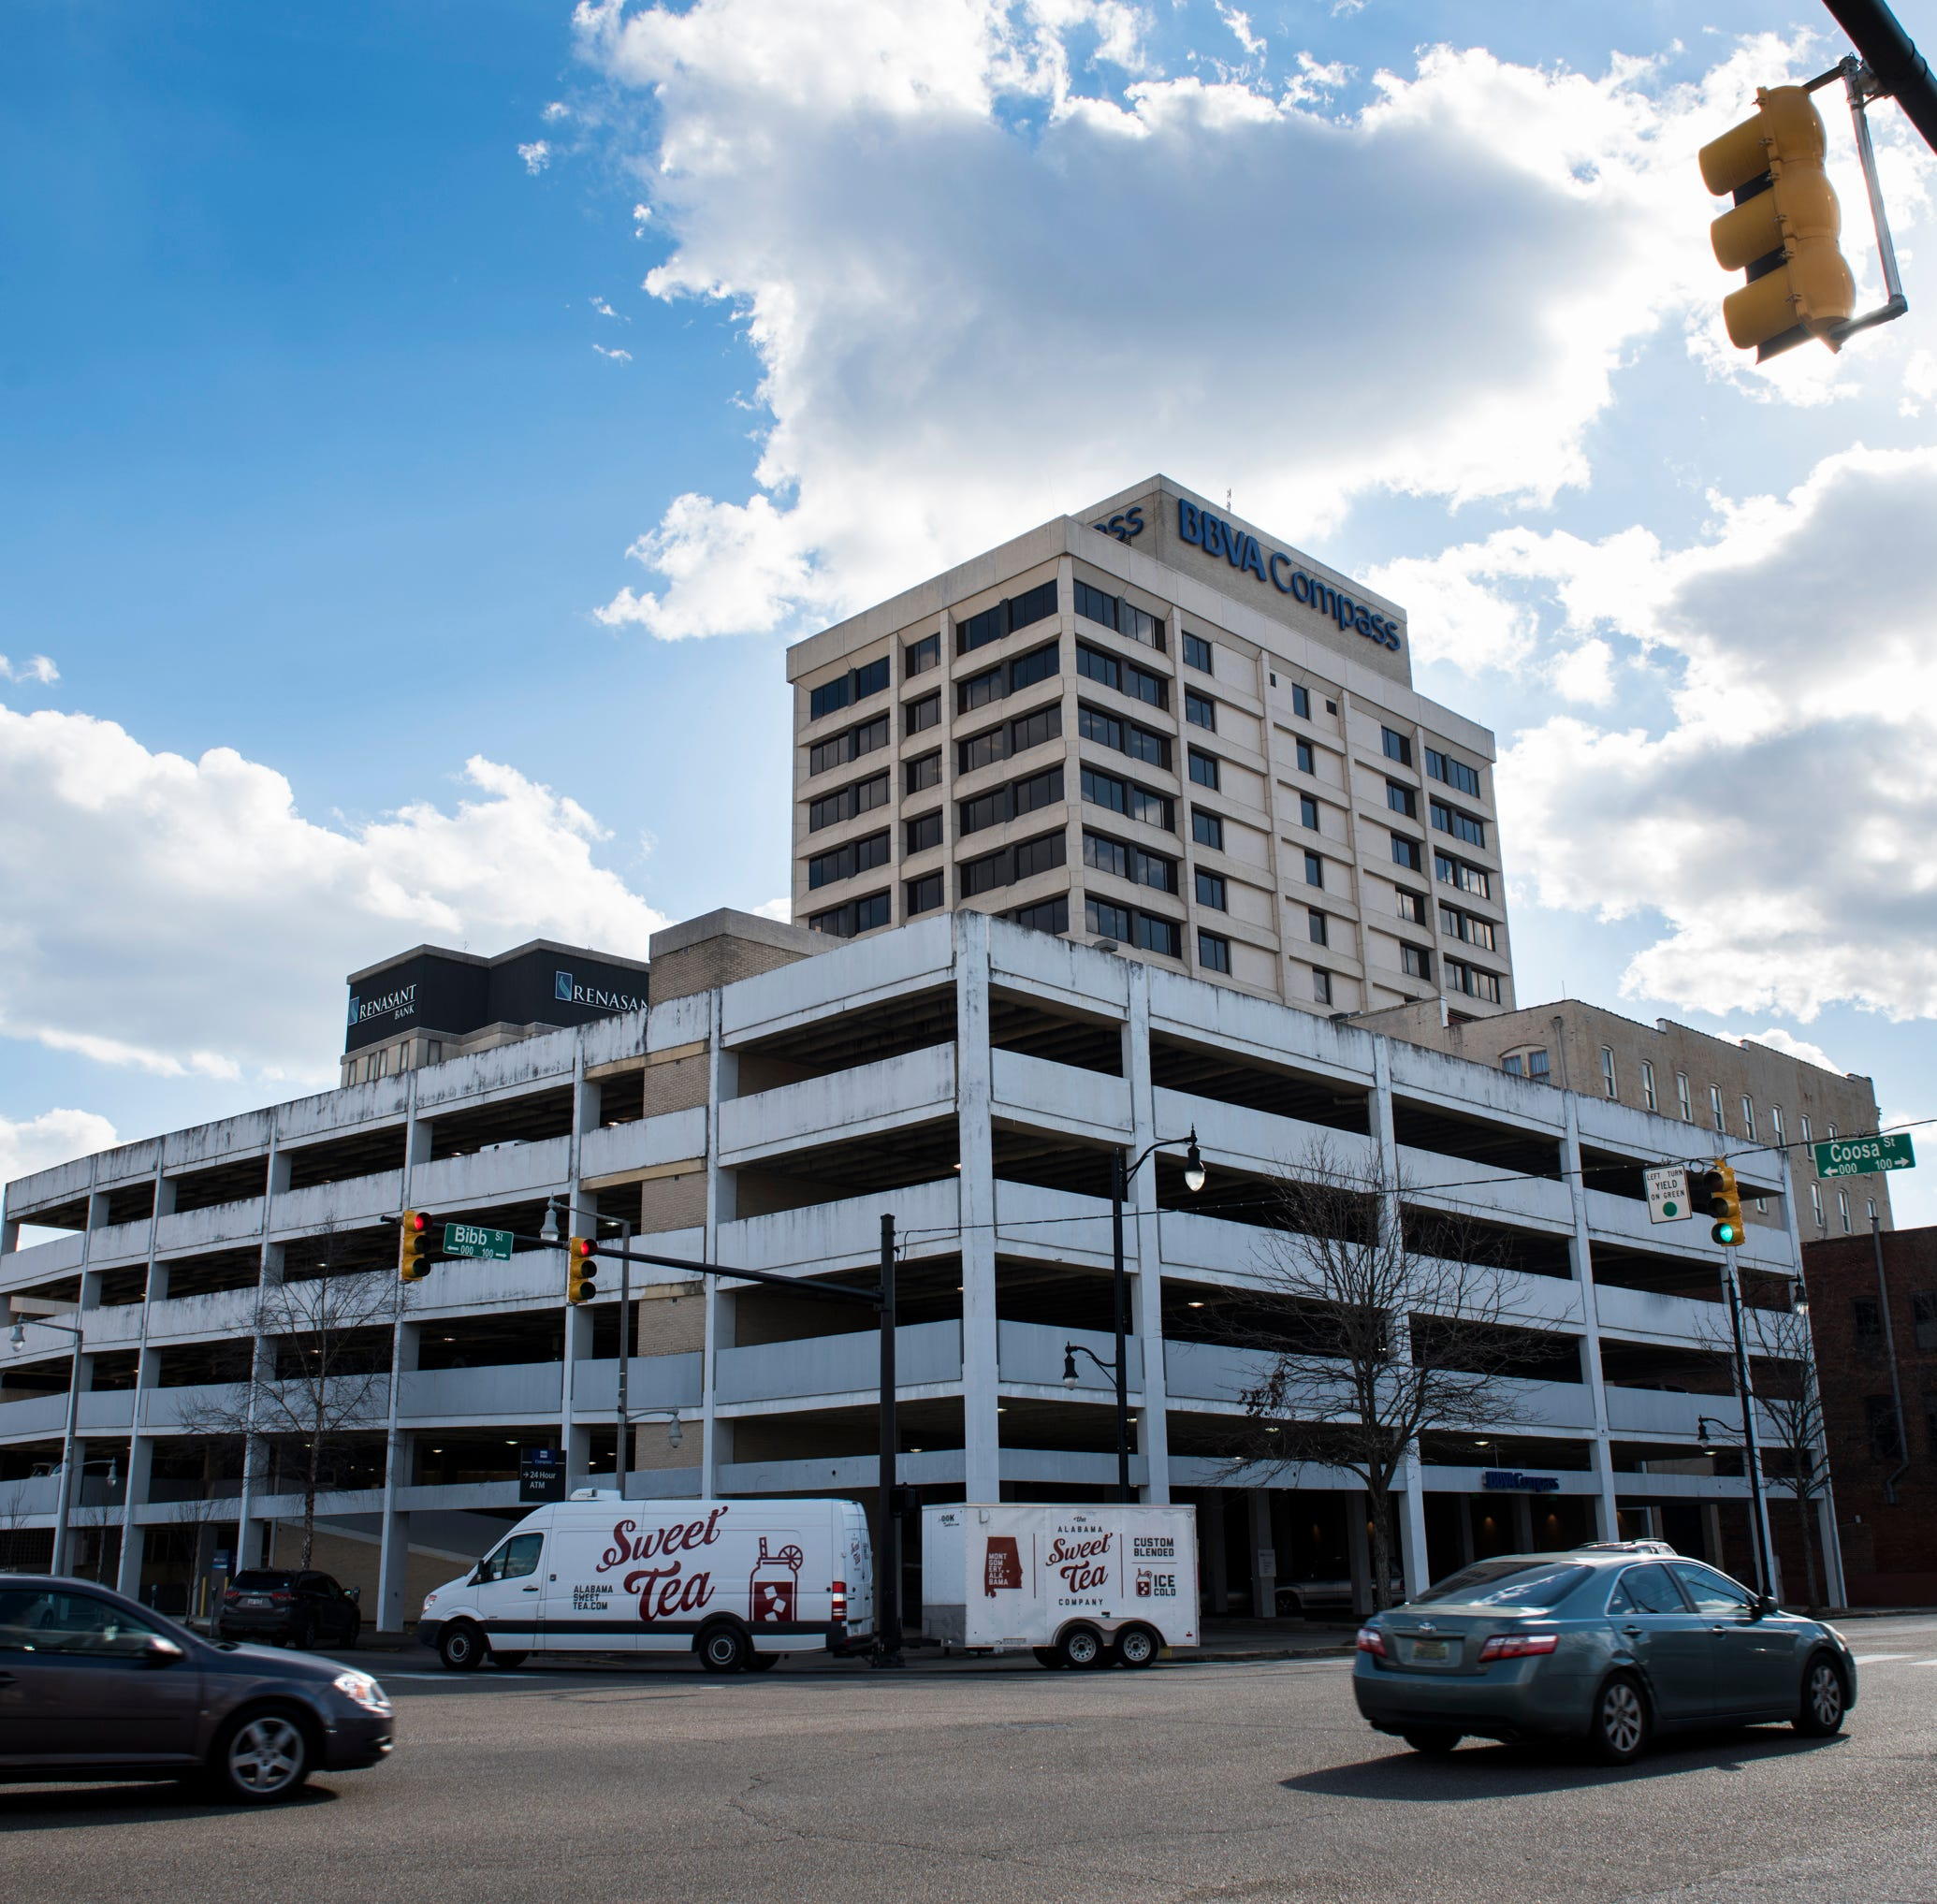 Parking deck the prize of hotel mogul's BBVA tower purchase